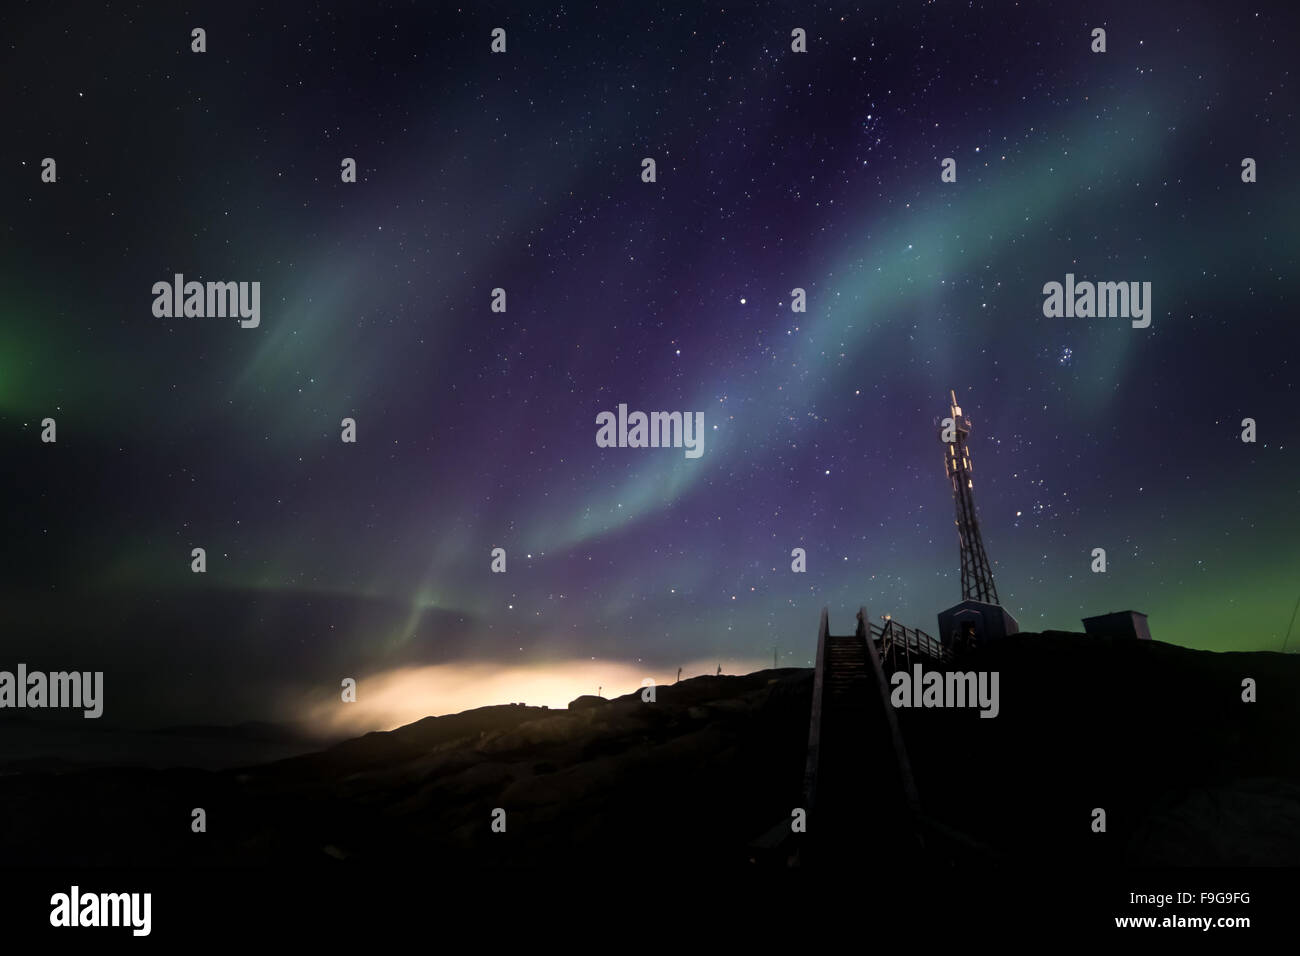 Green extensive Northern lights shining over the starlight sky and